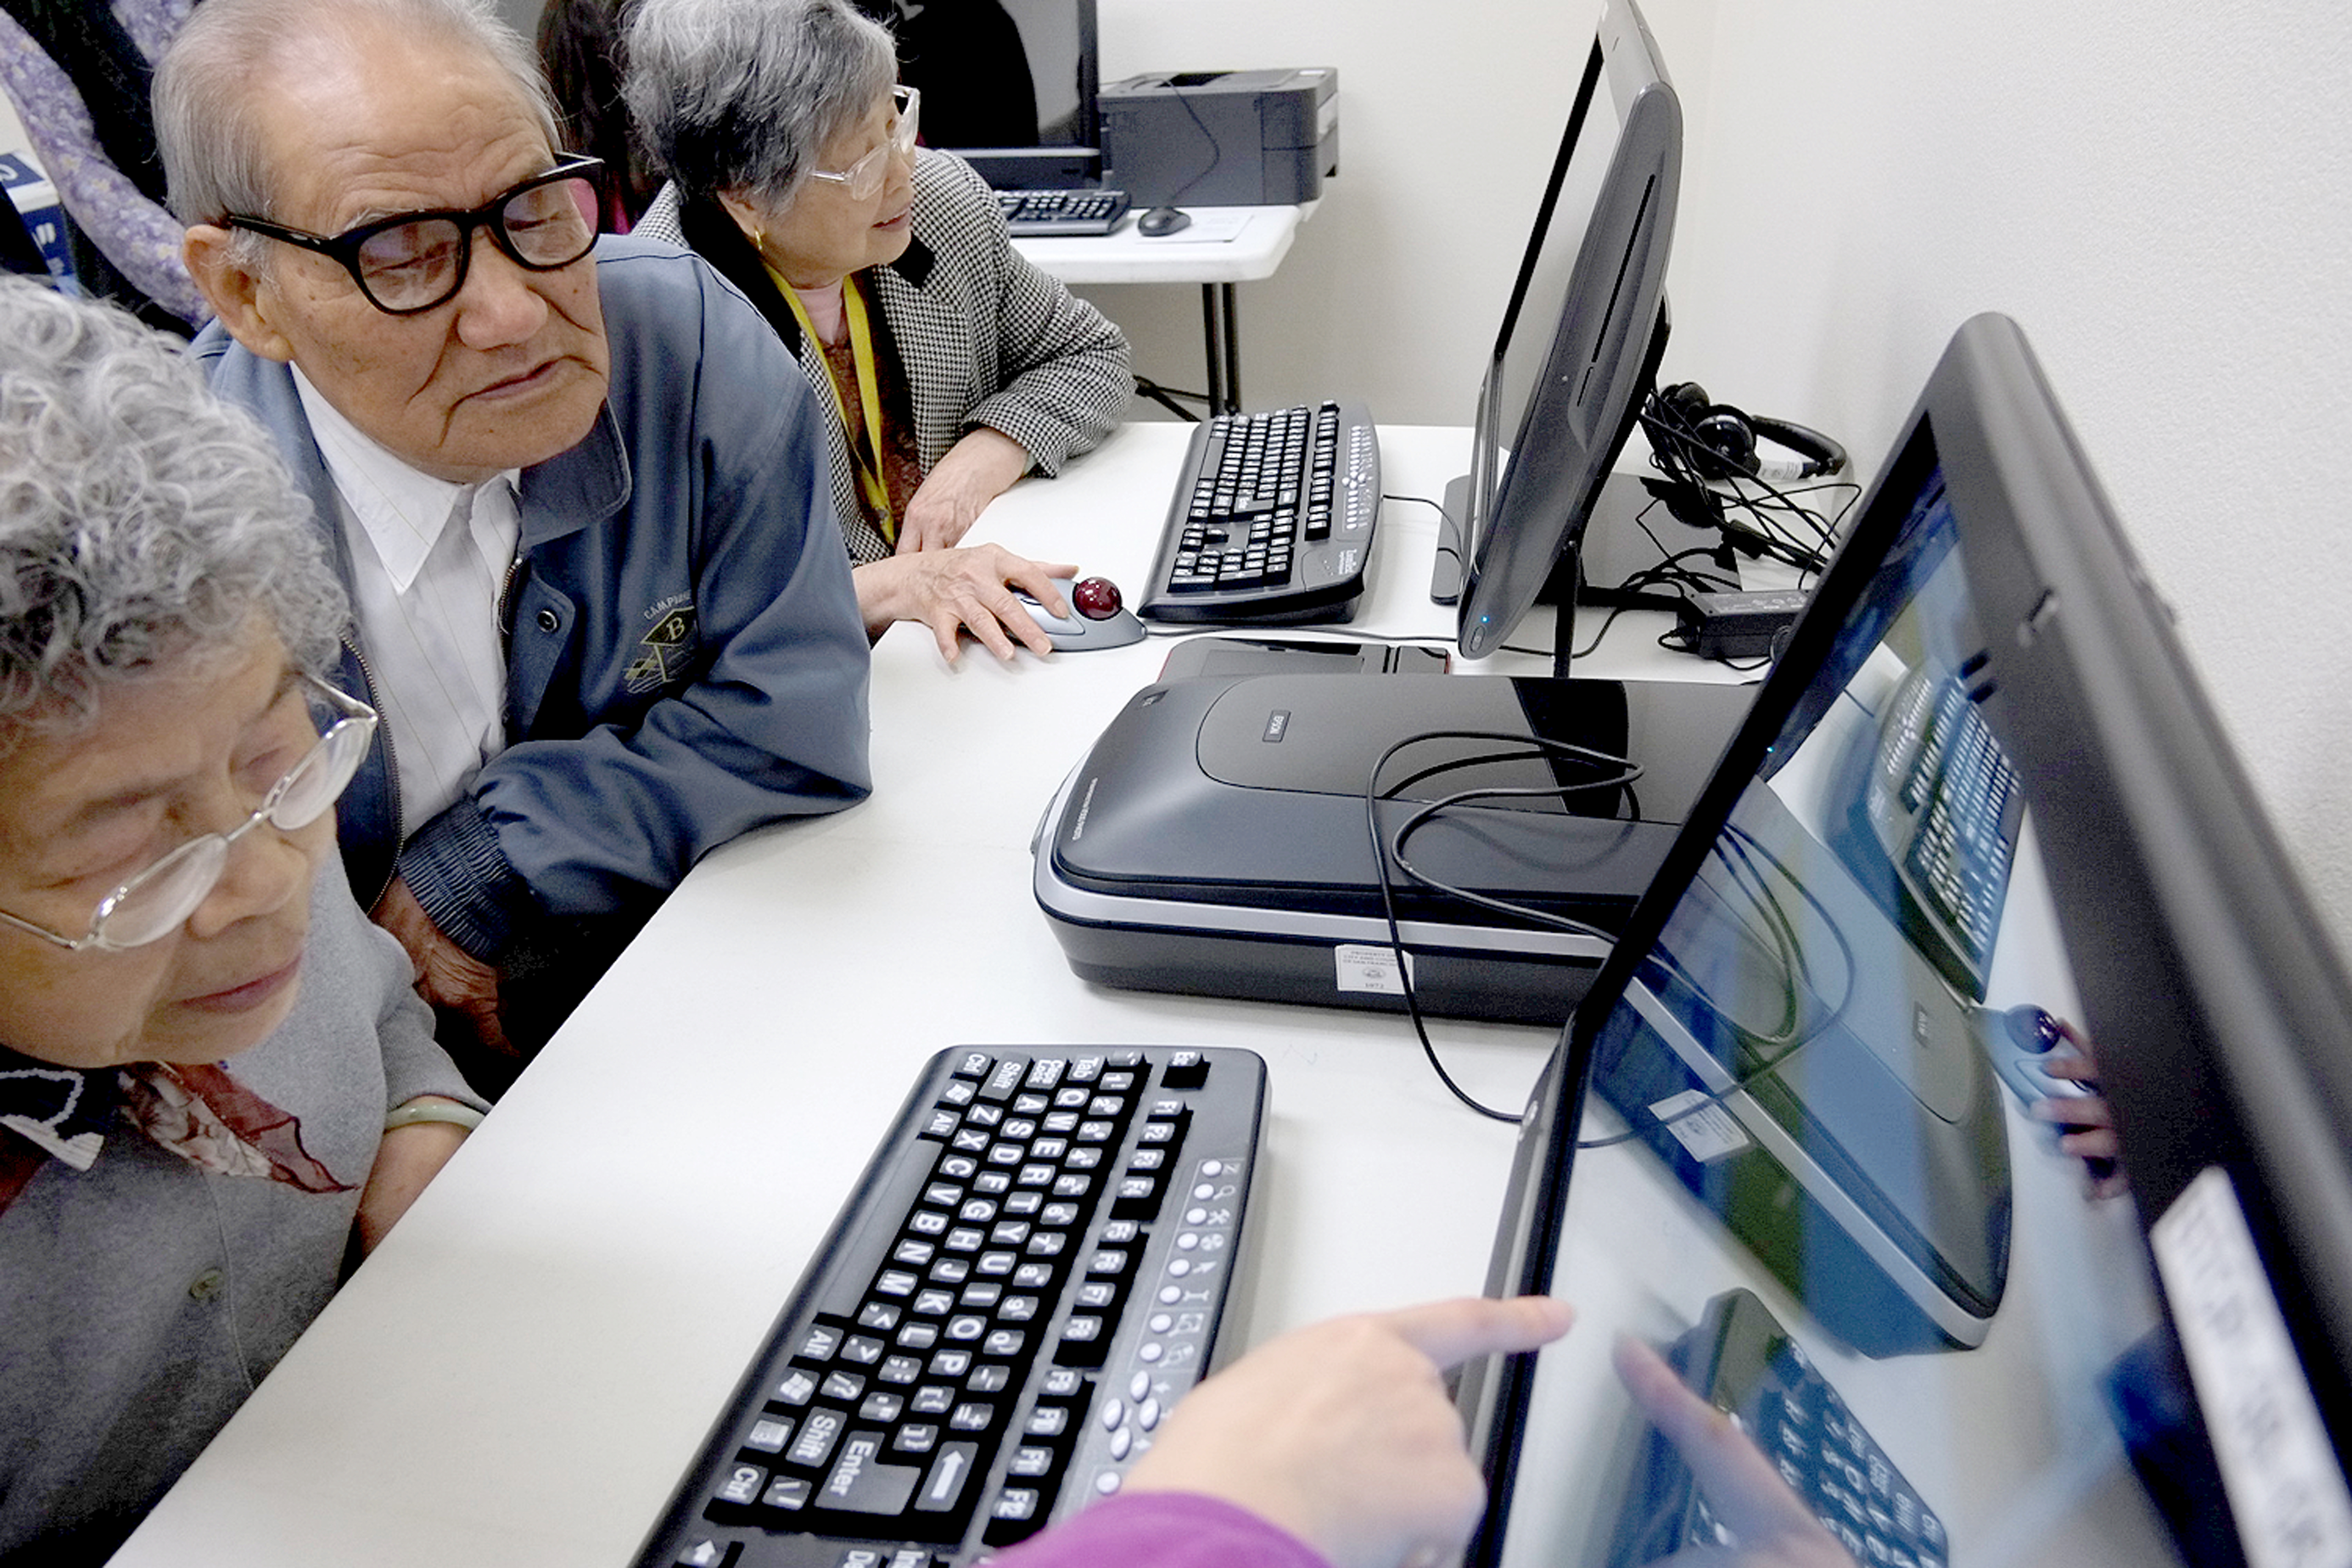 Older people working on a computer with help from an instructor